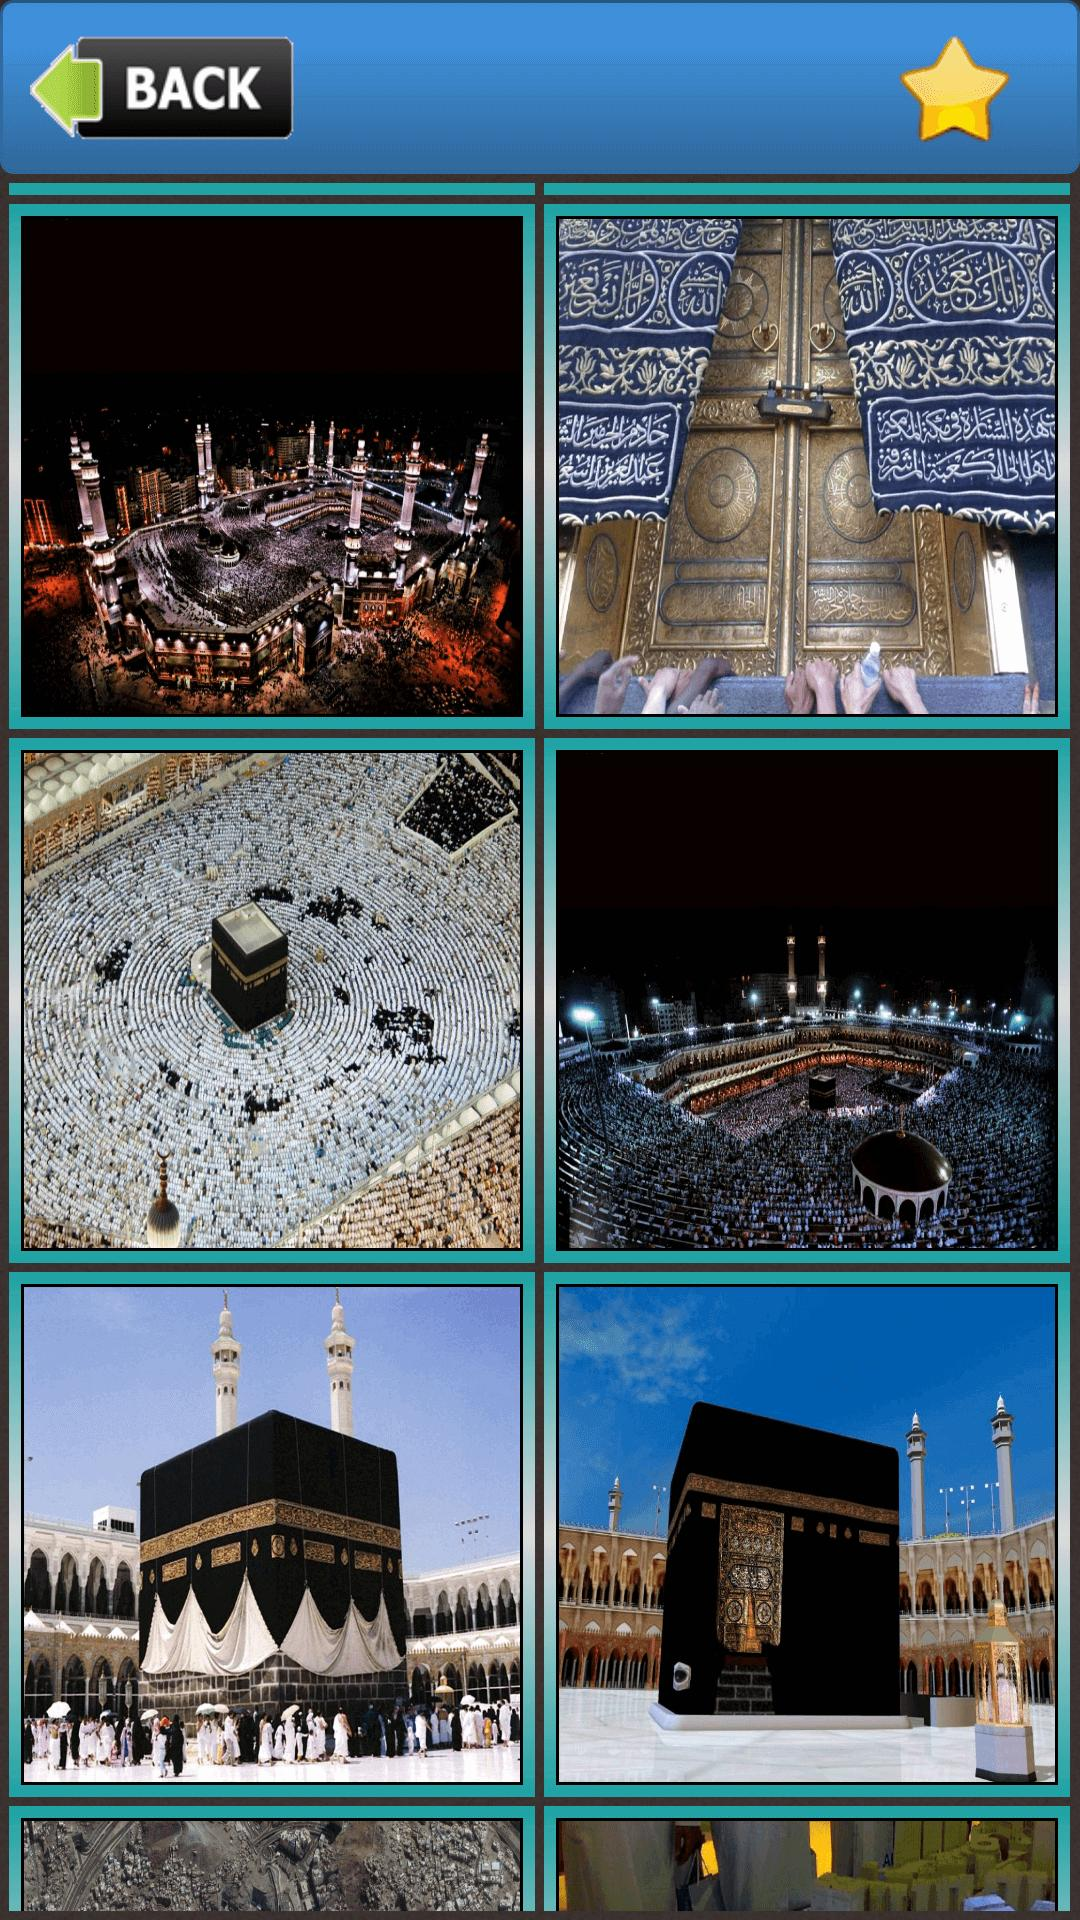 Makkah Madina Wallpapers for Android - APK Download